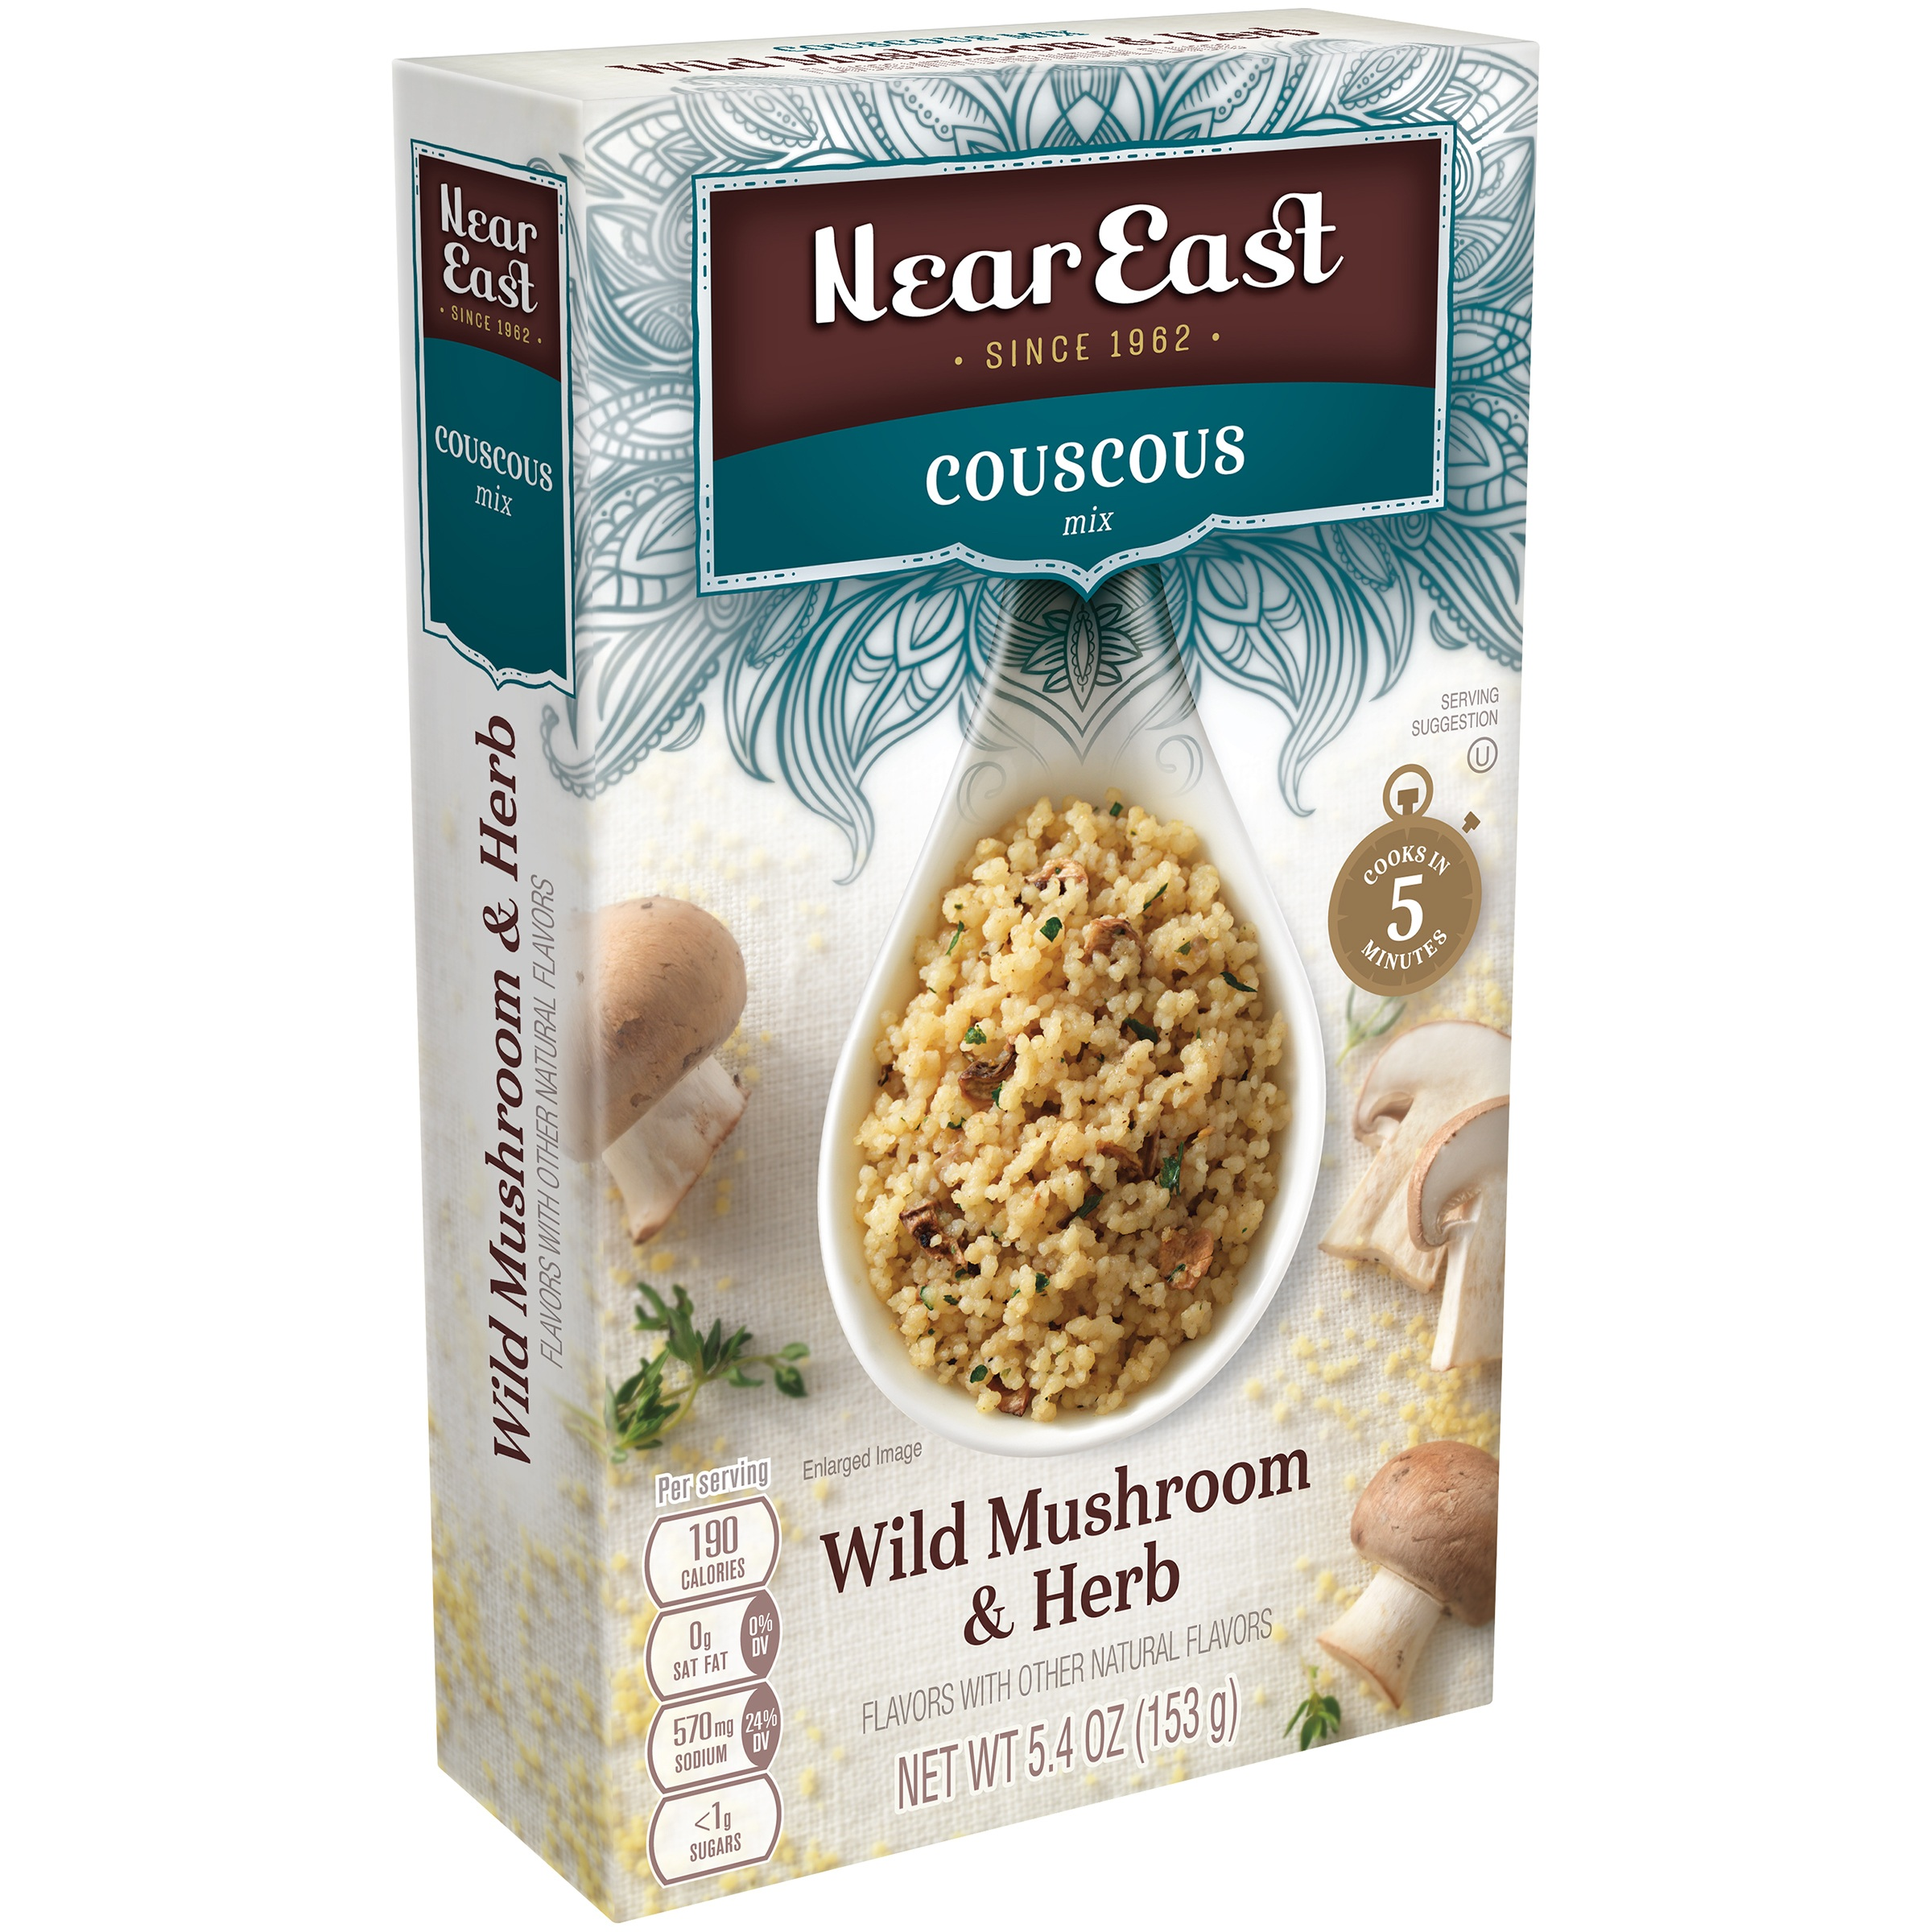 Near East Couscous Mix, Wild Mushroom & Herb, 5.4 oz Box